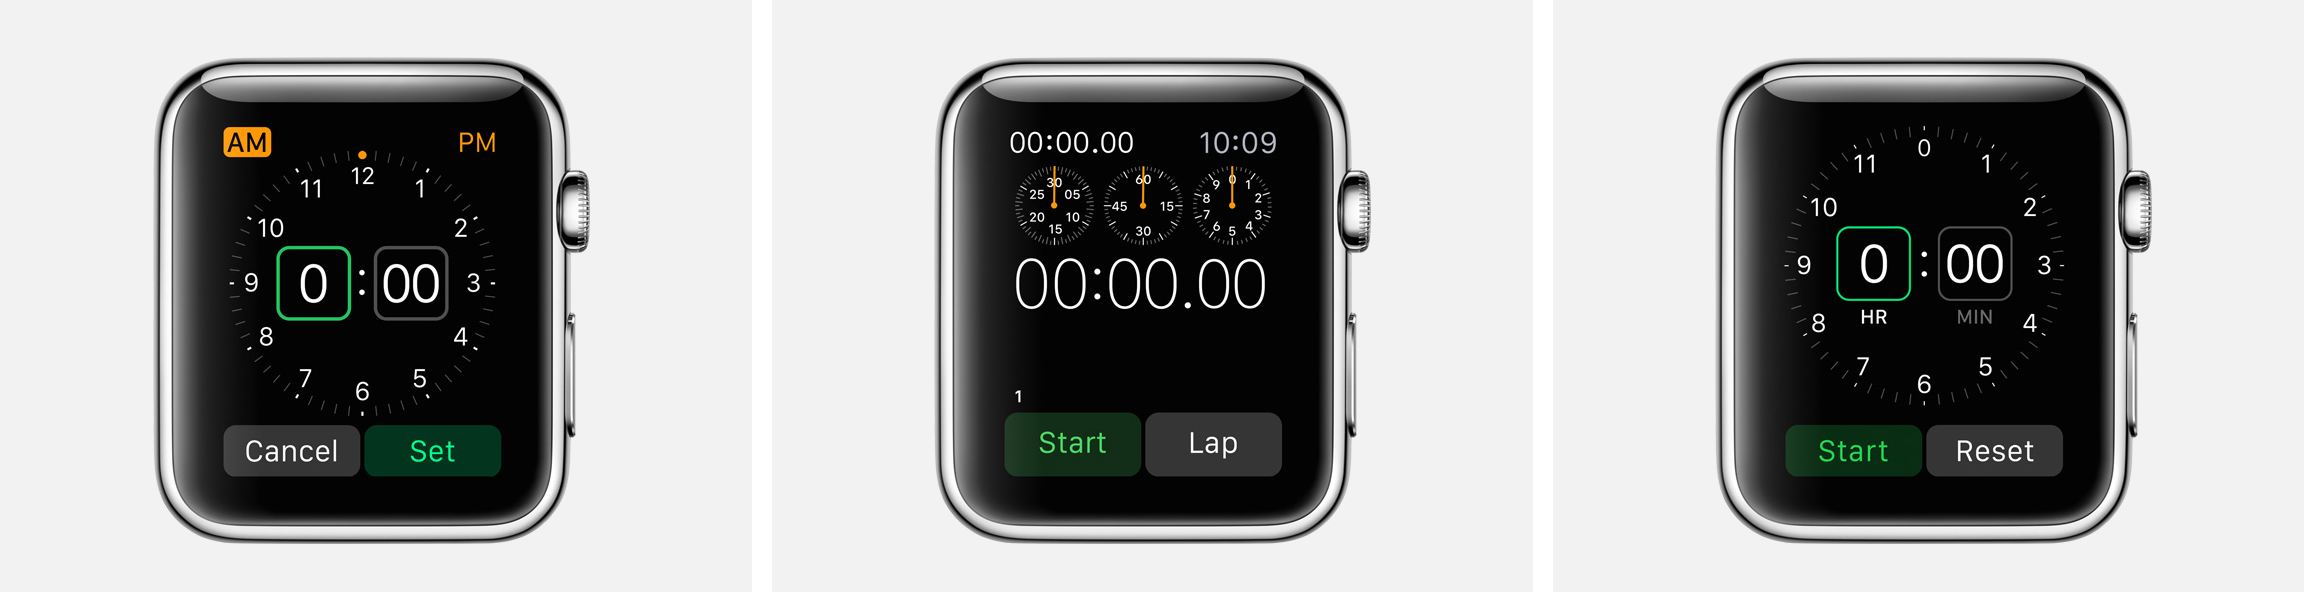 alarm stopwatch timer watch apps